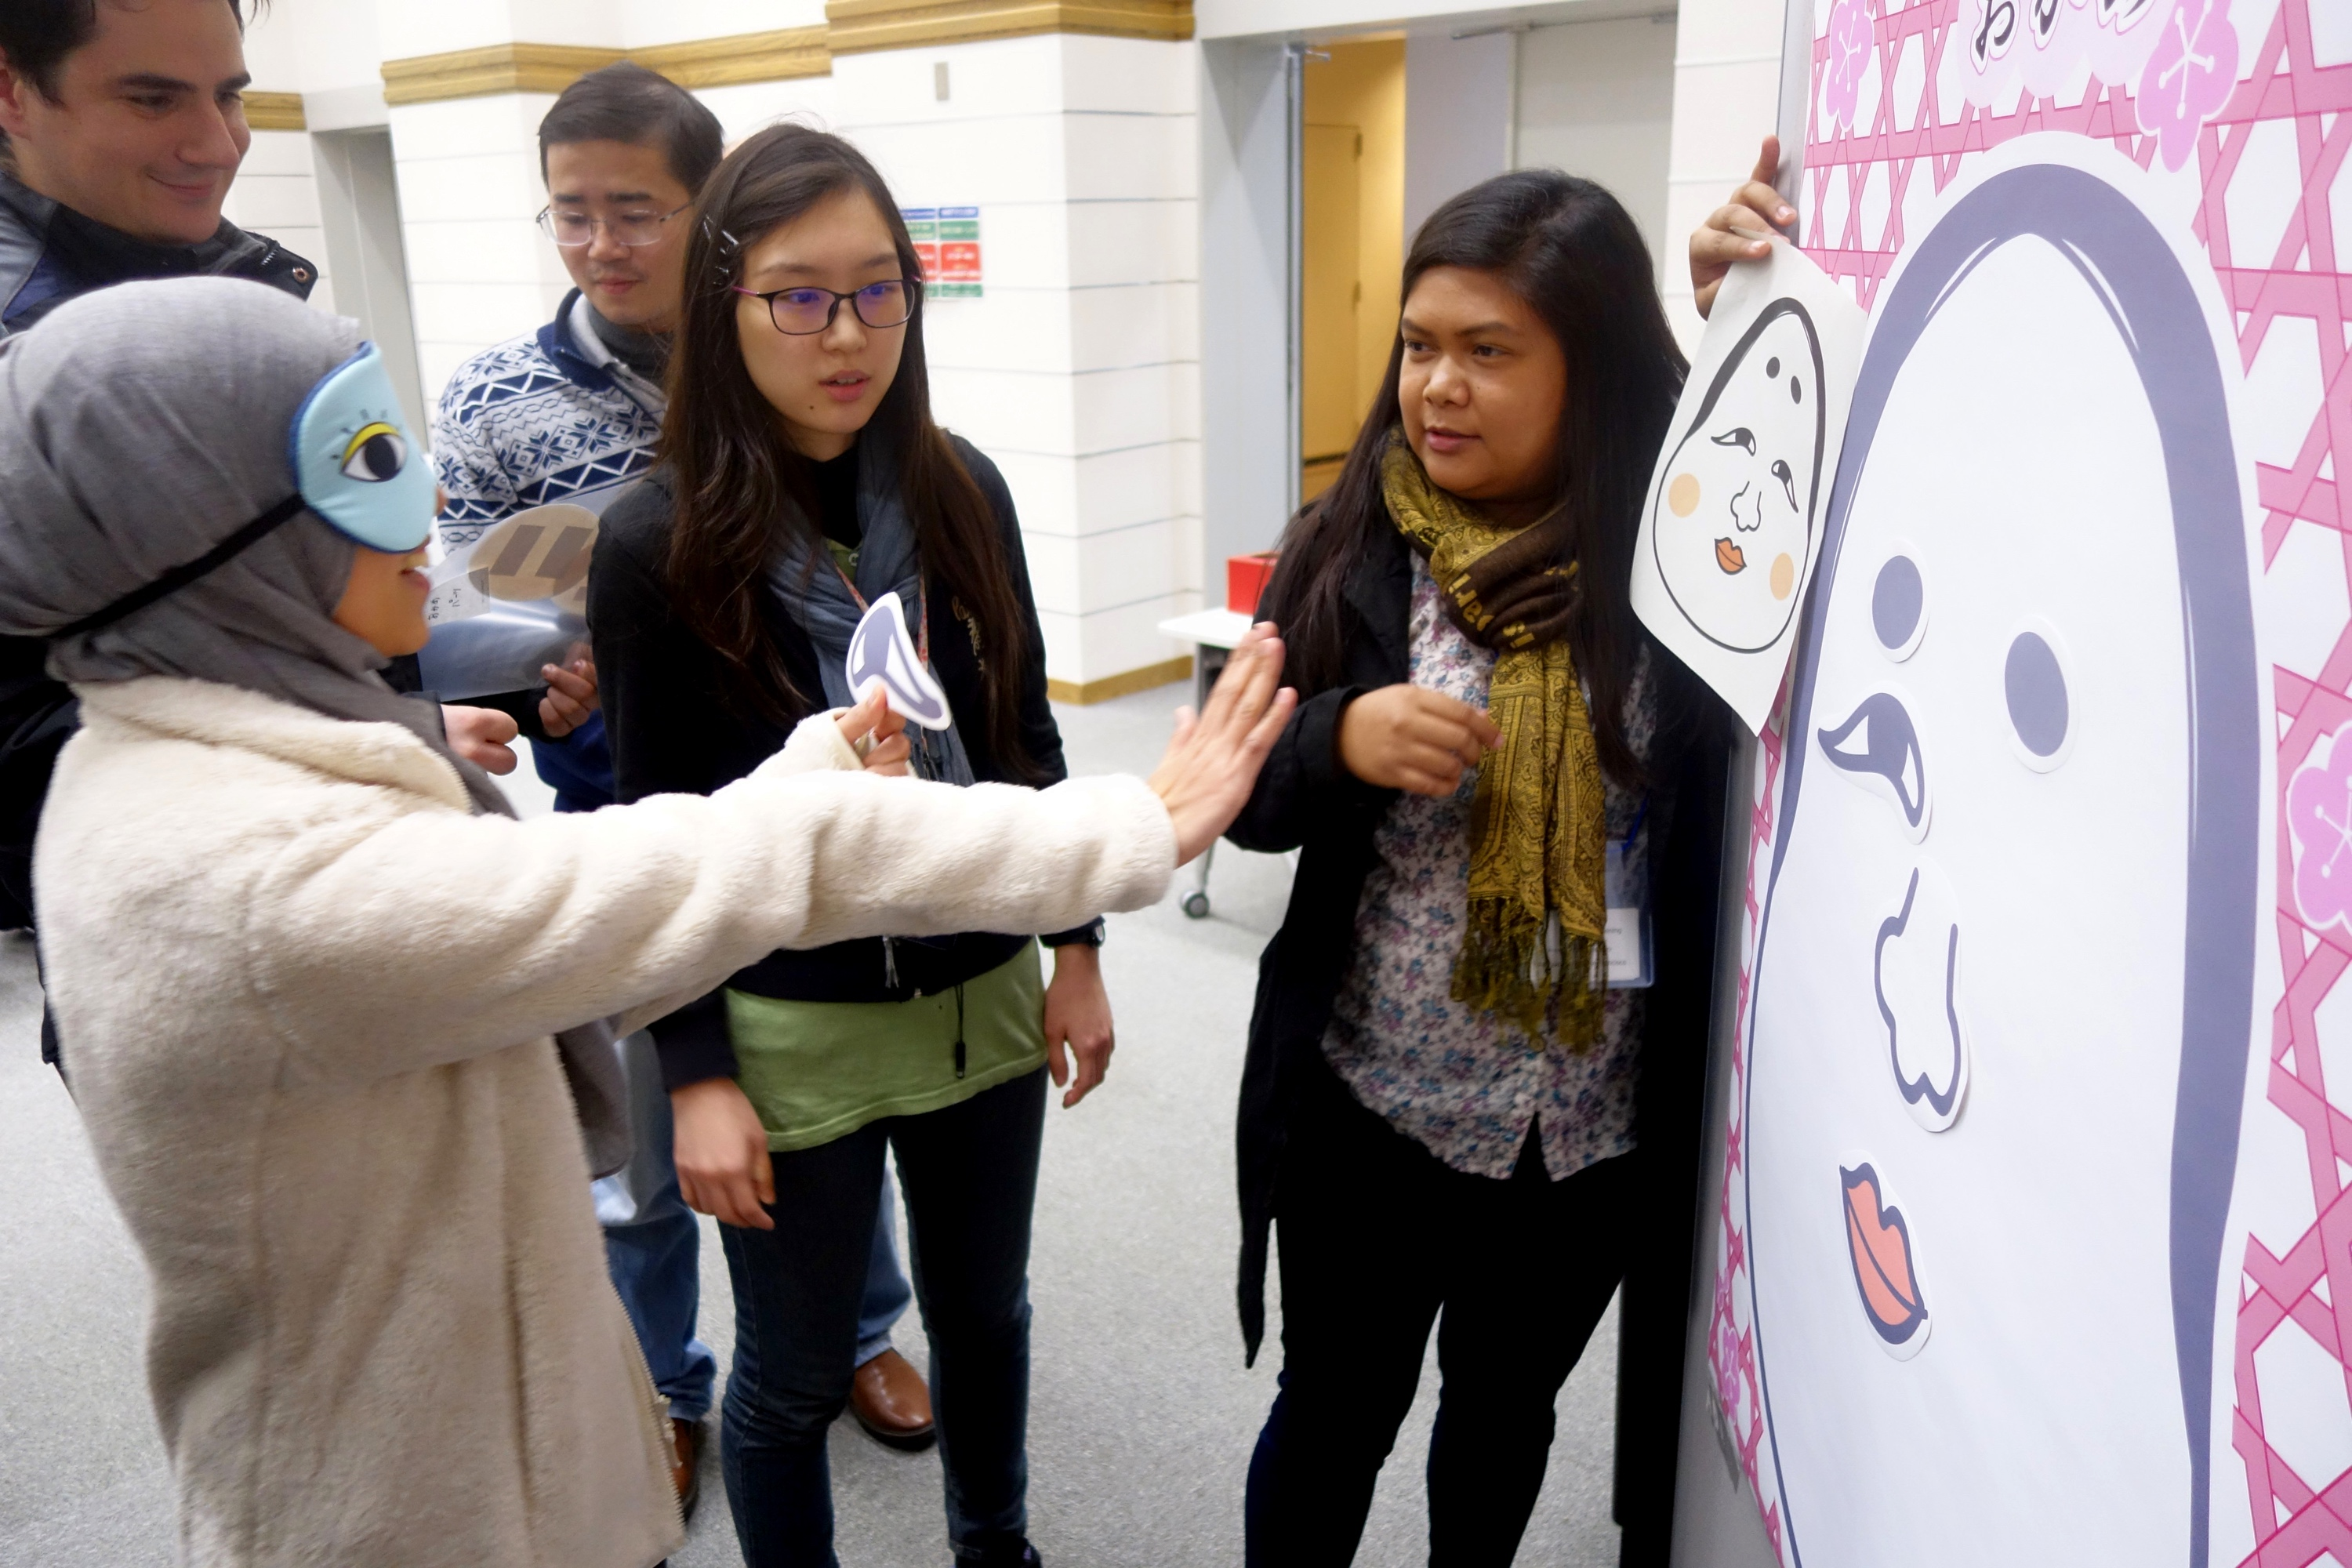 A student is instructed to pin an eye on a helpless face at the NAIST Tea Time.